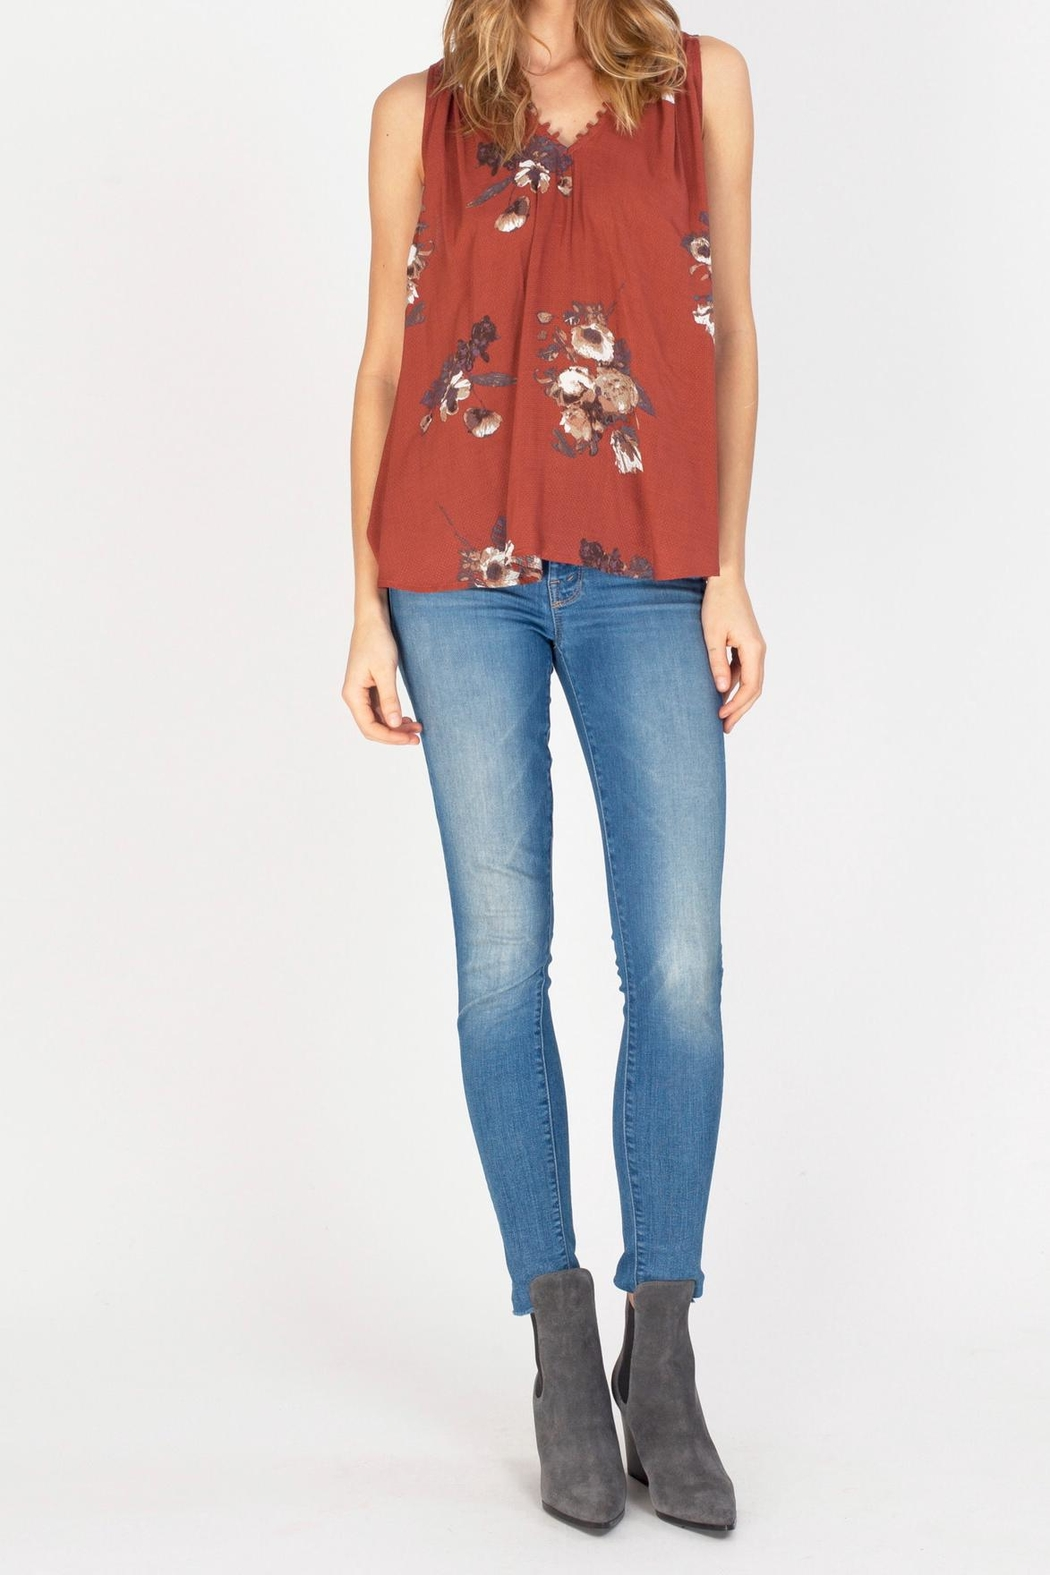 Gentle Fawn Clara-Copper Floral Top - Main Image